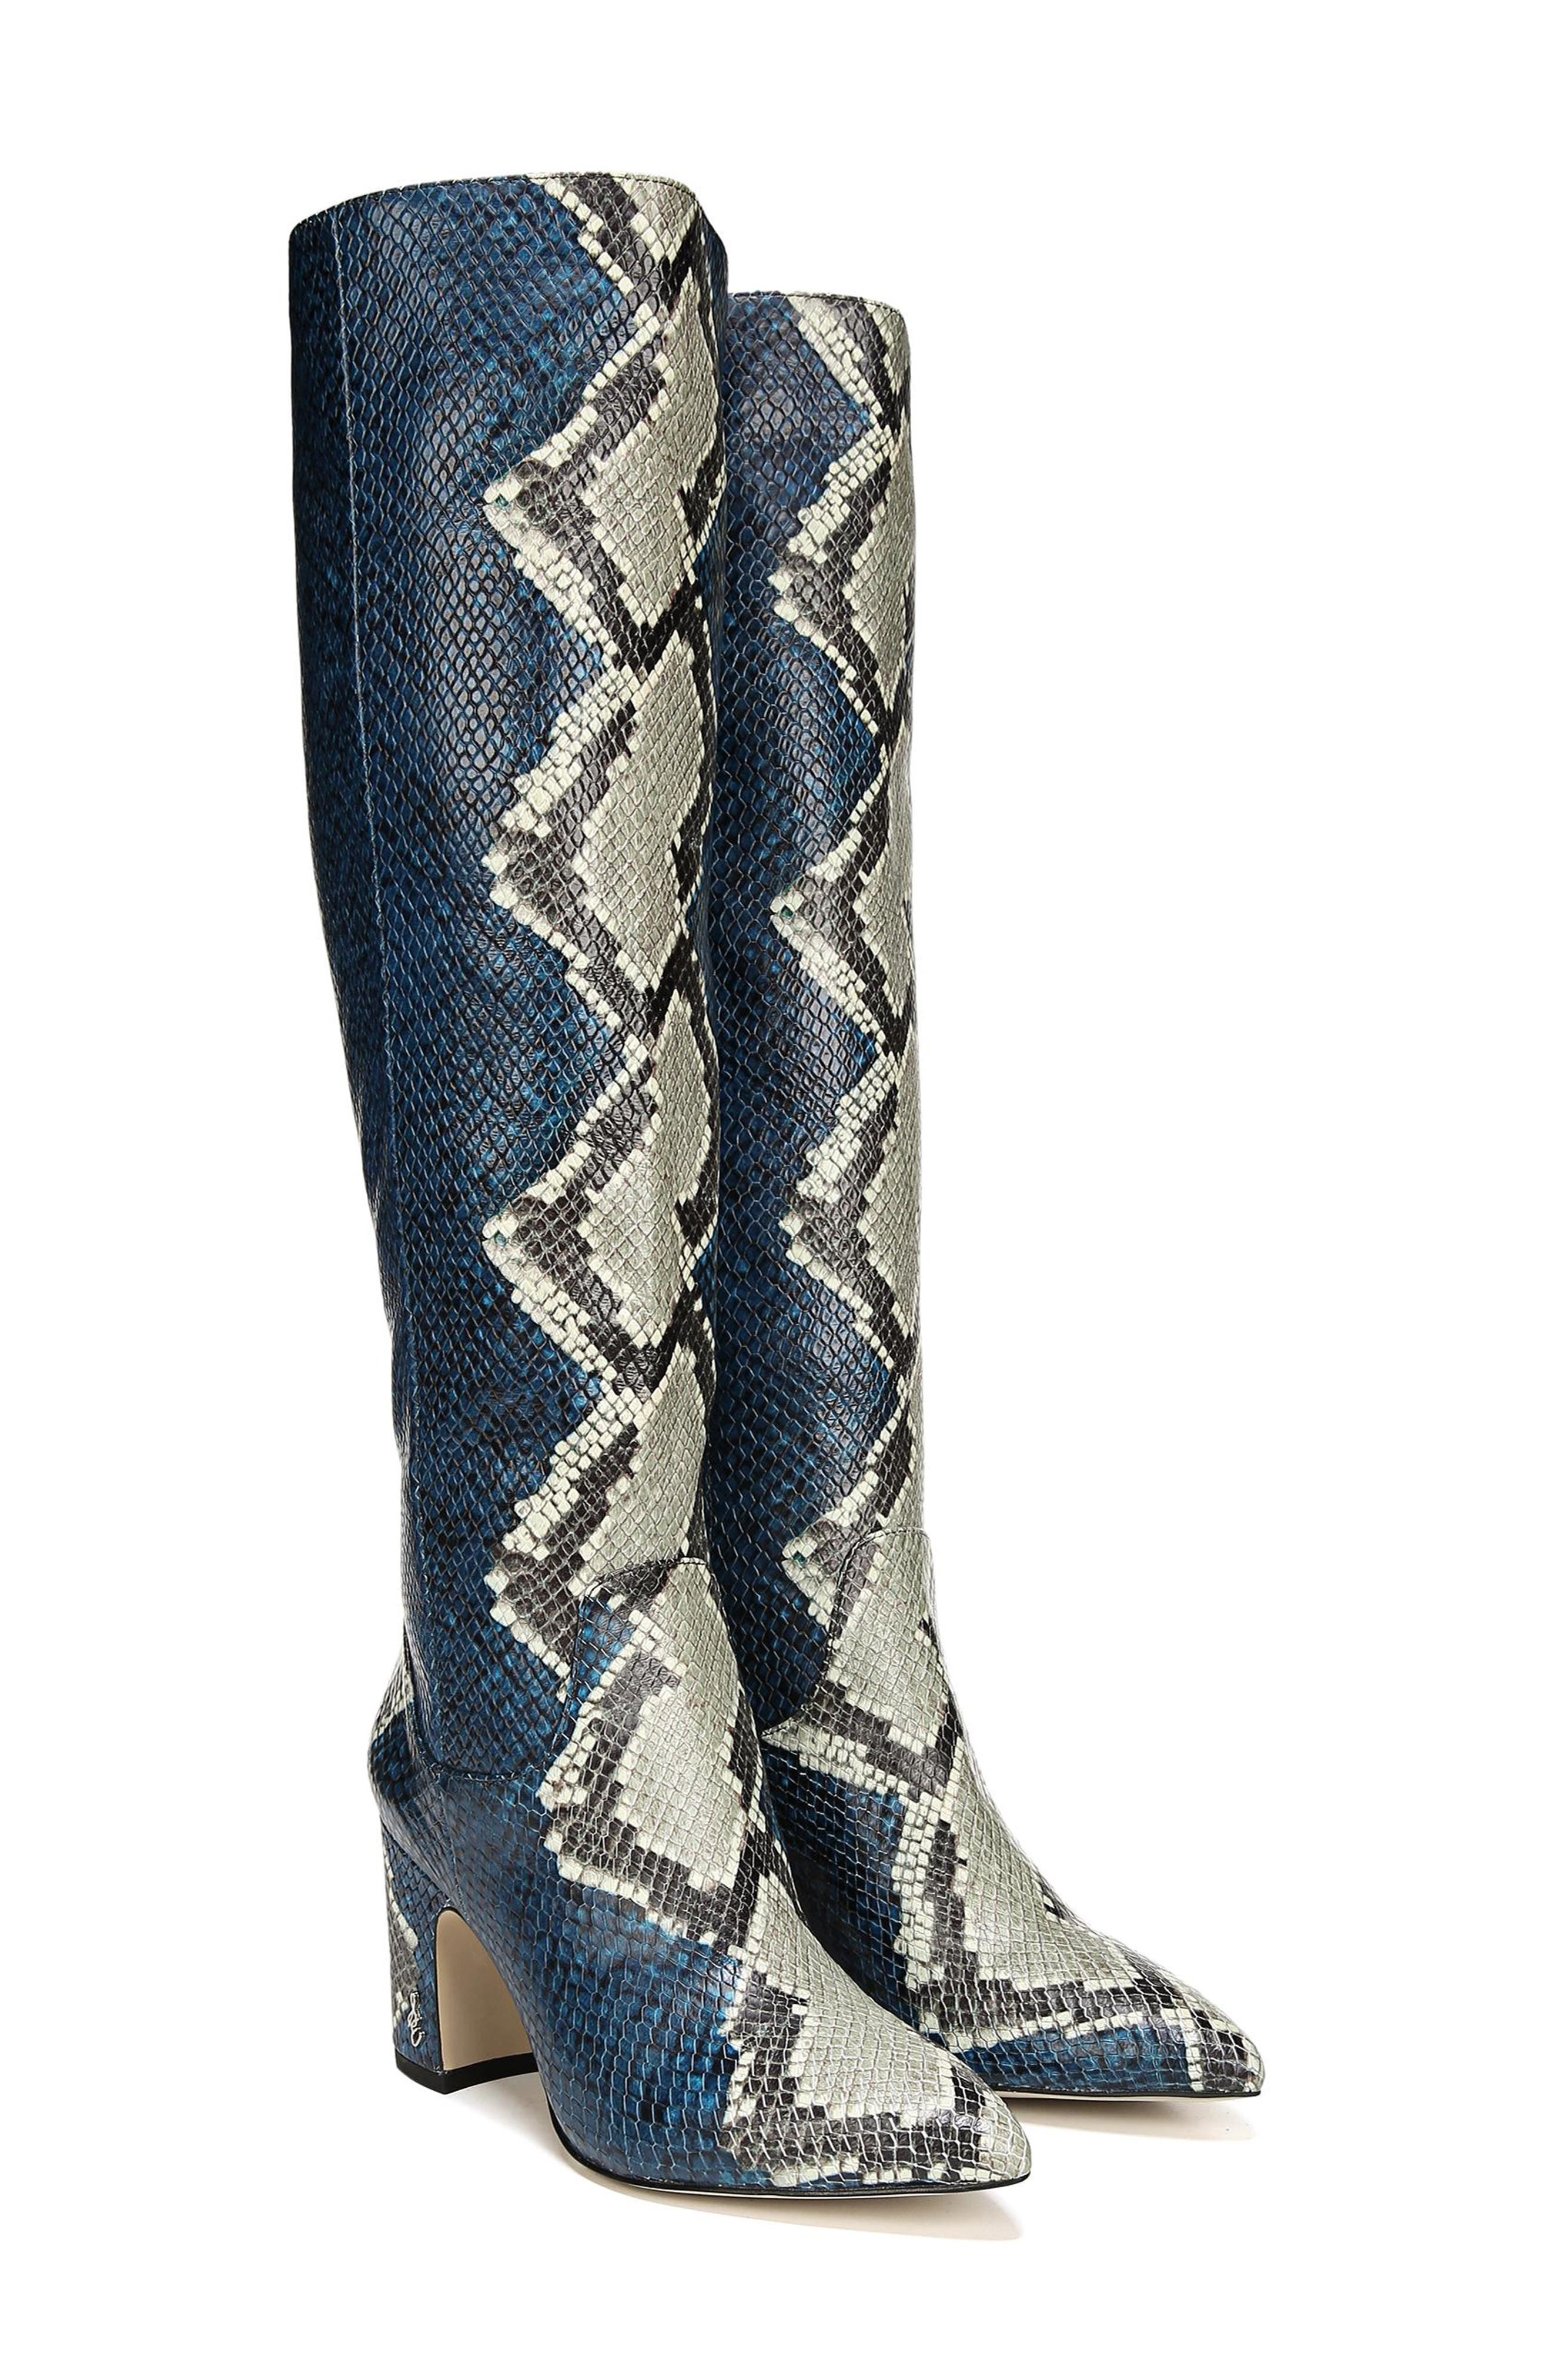 Hai Knee High Boot,                             Alternate thumbnail 8, color,                             PEACOCK EMBOSSED LEATHER